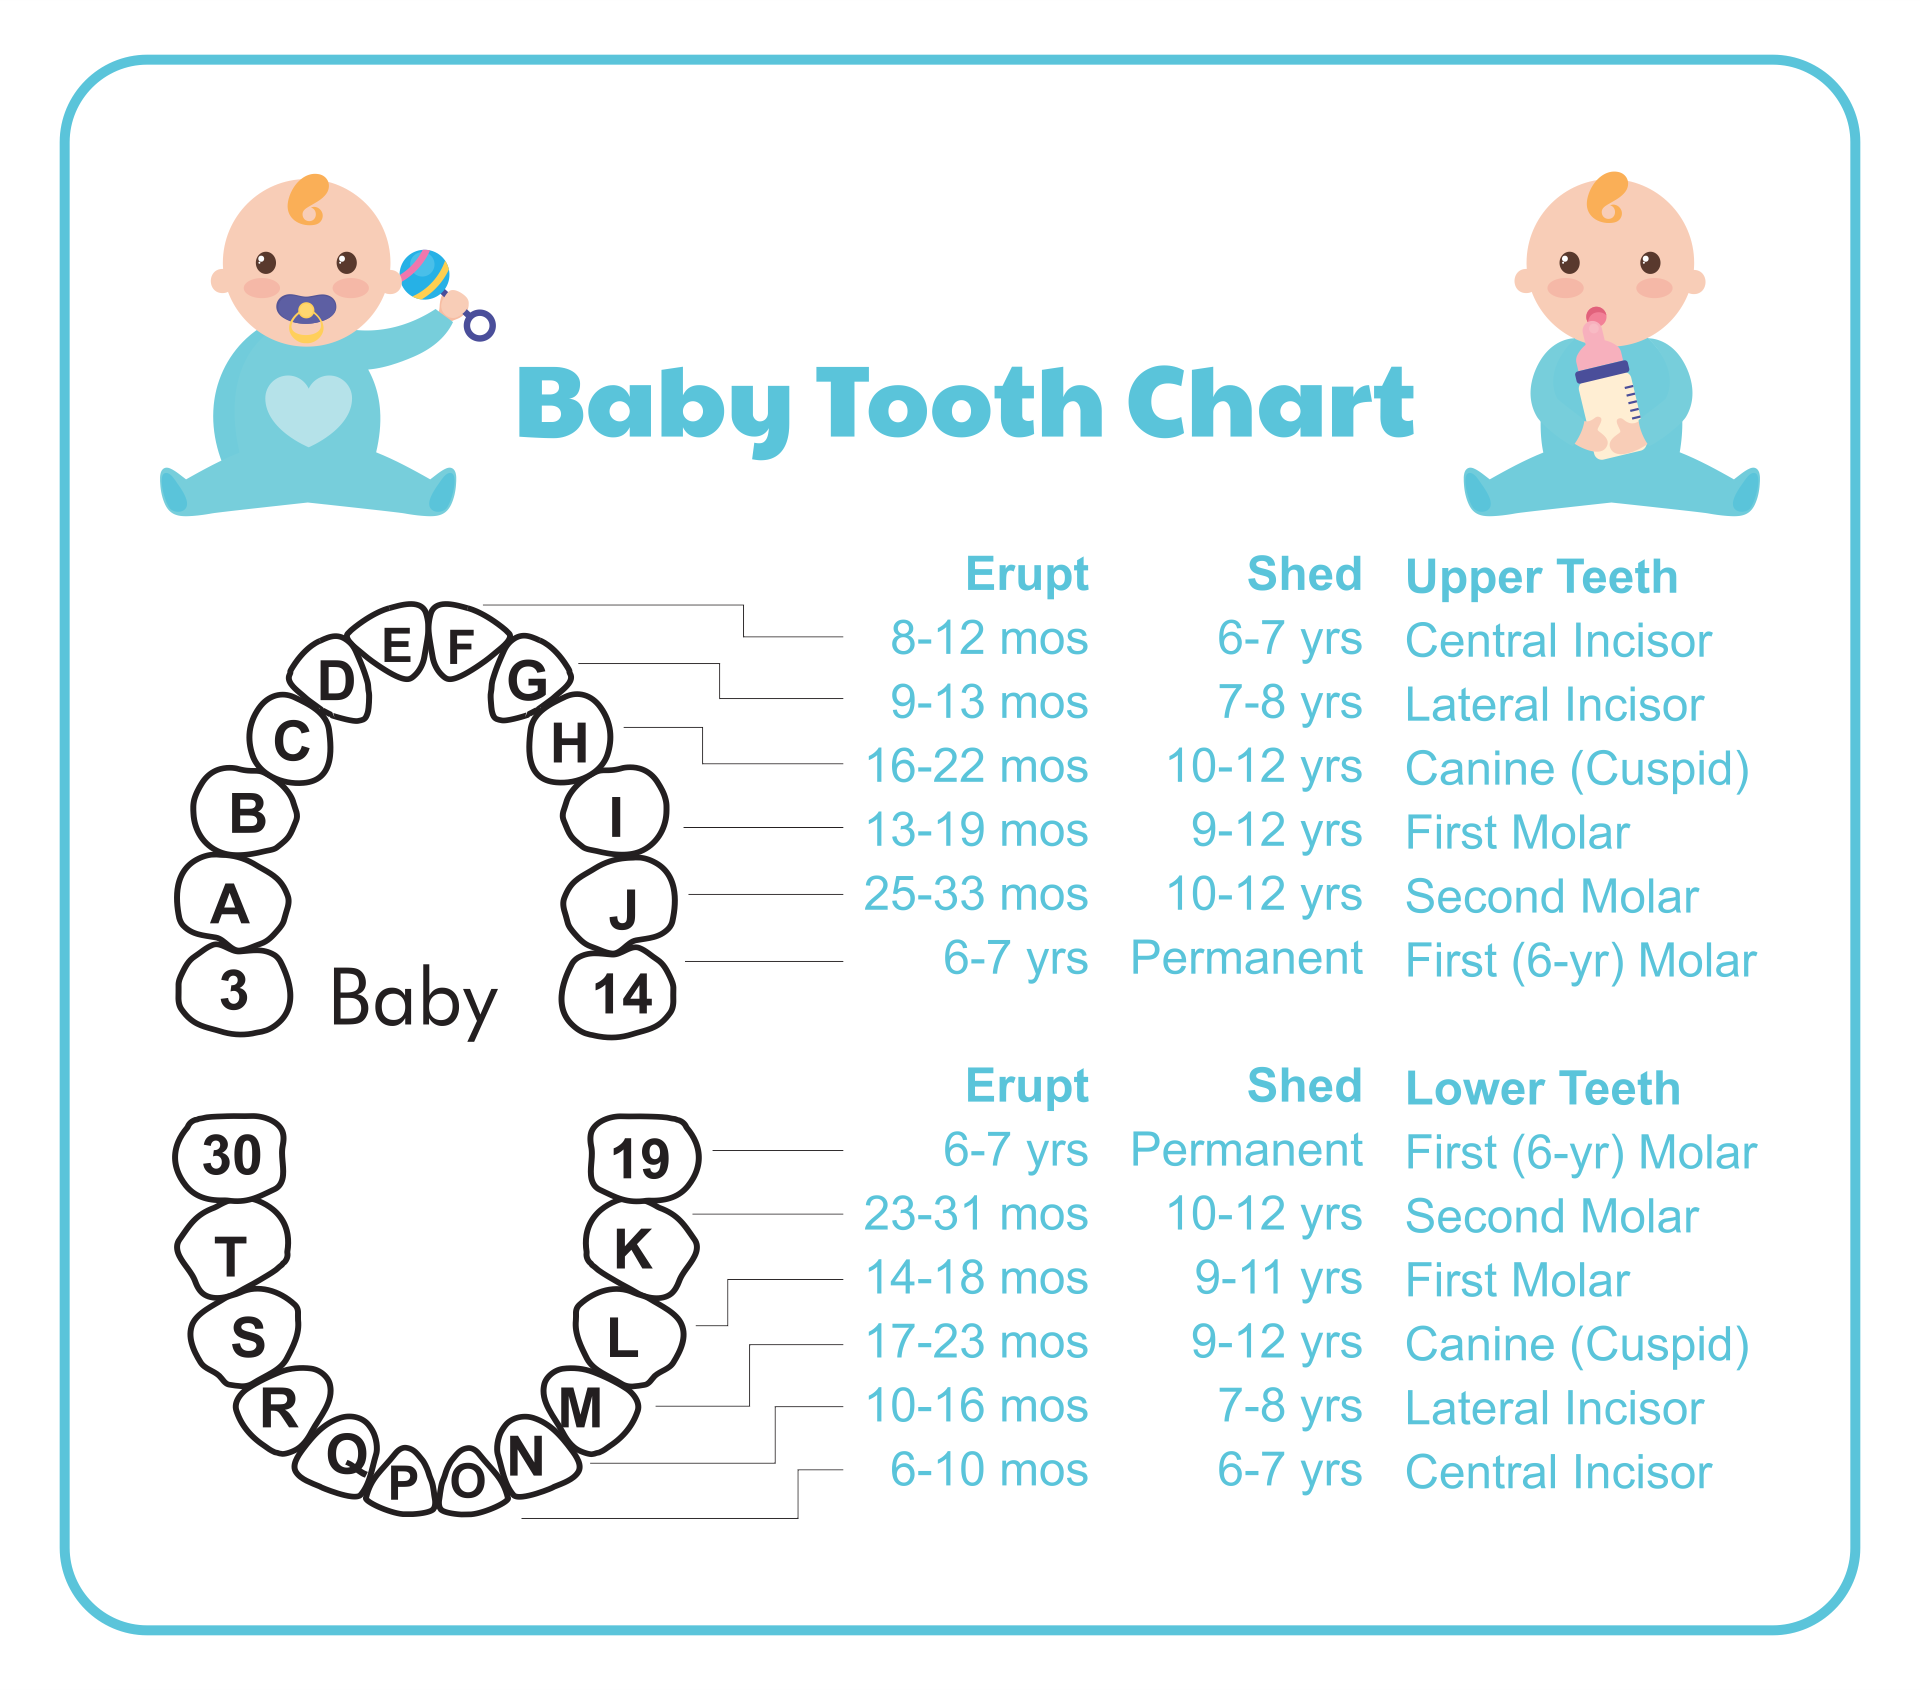 8 Best Images of Tooth Chart Printable Full Sheet - Dental ...